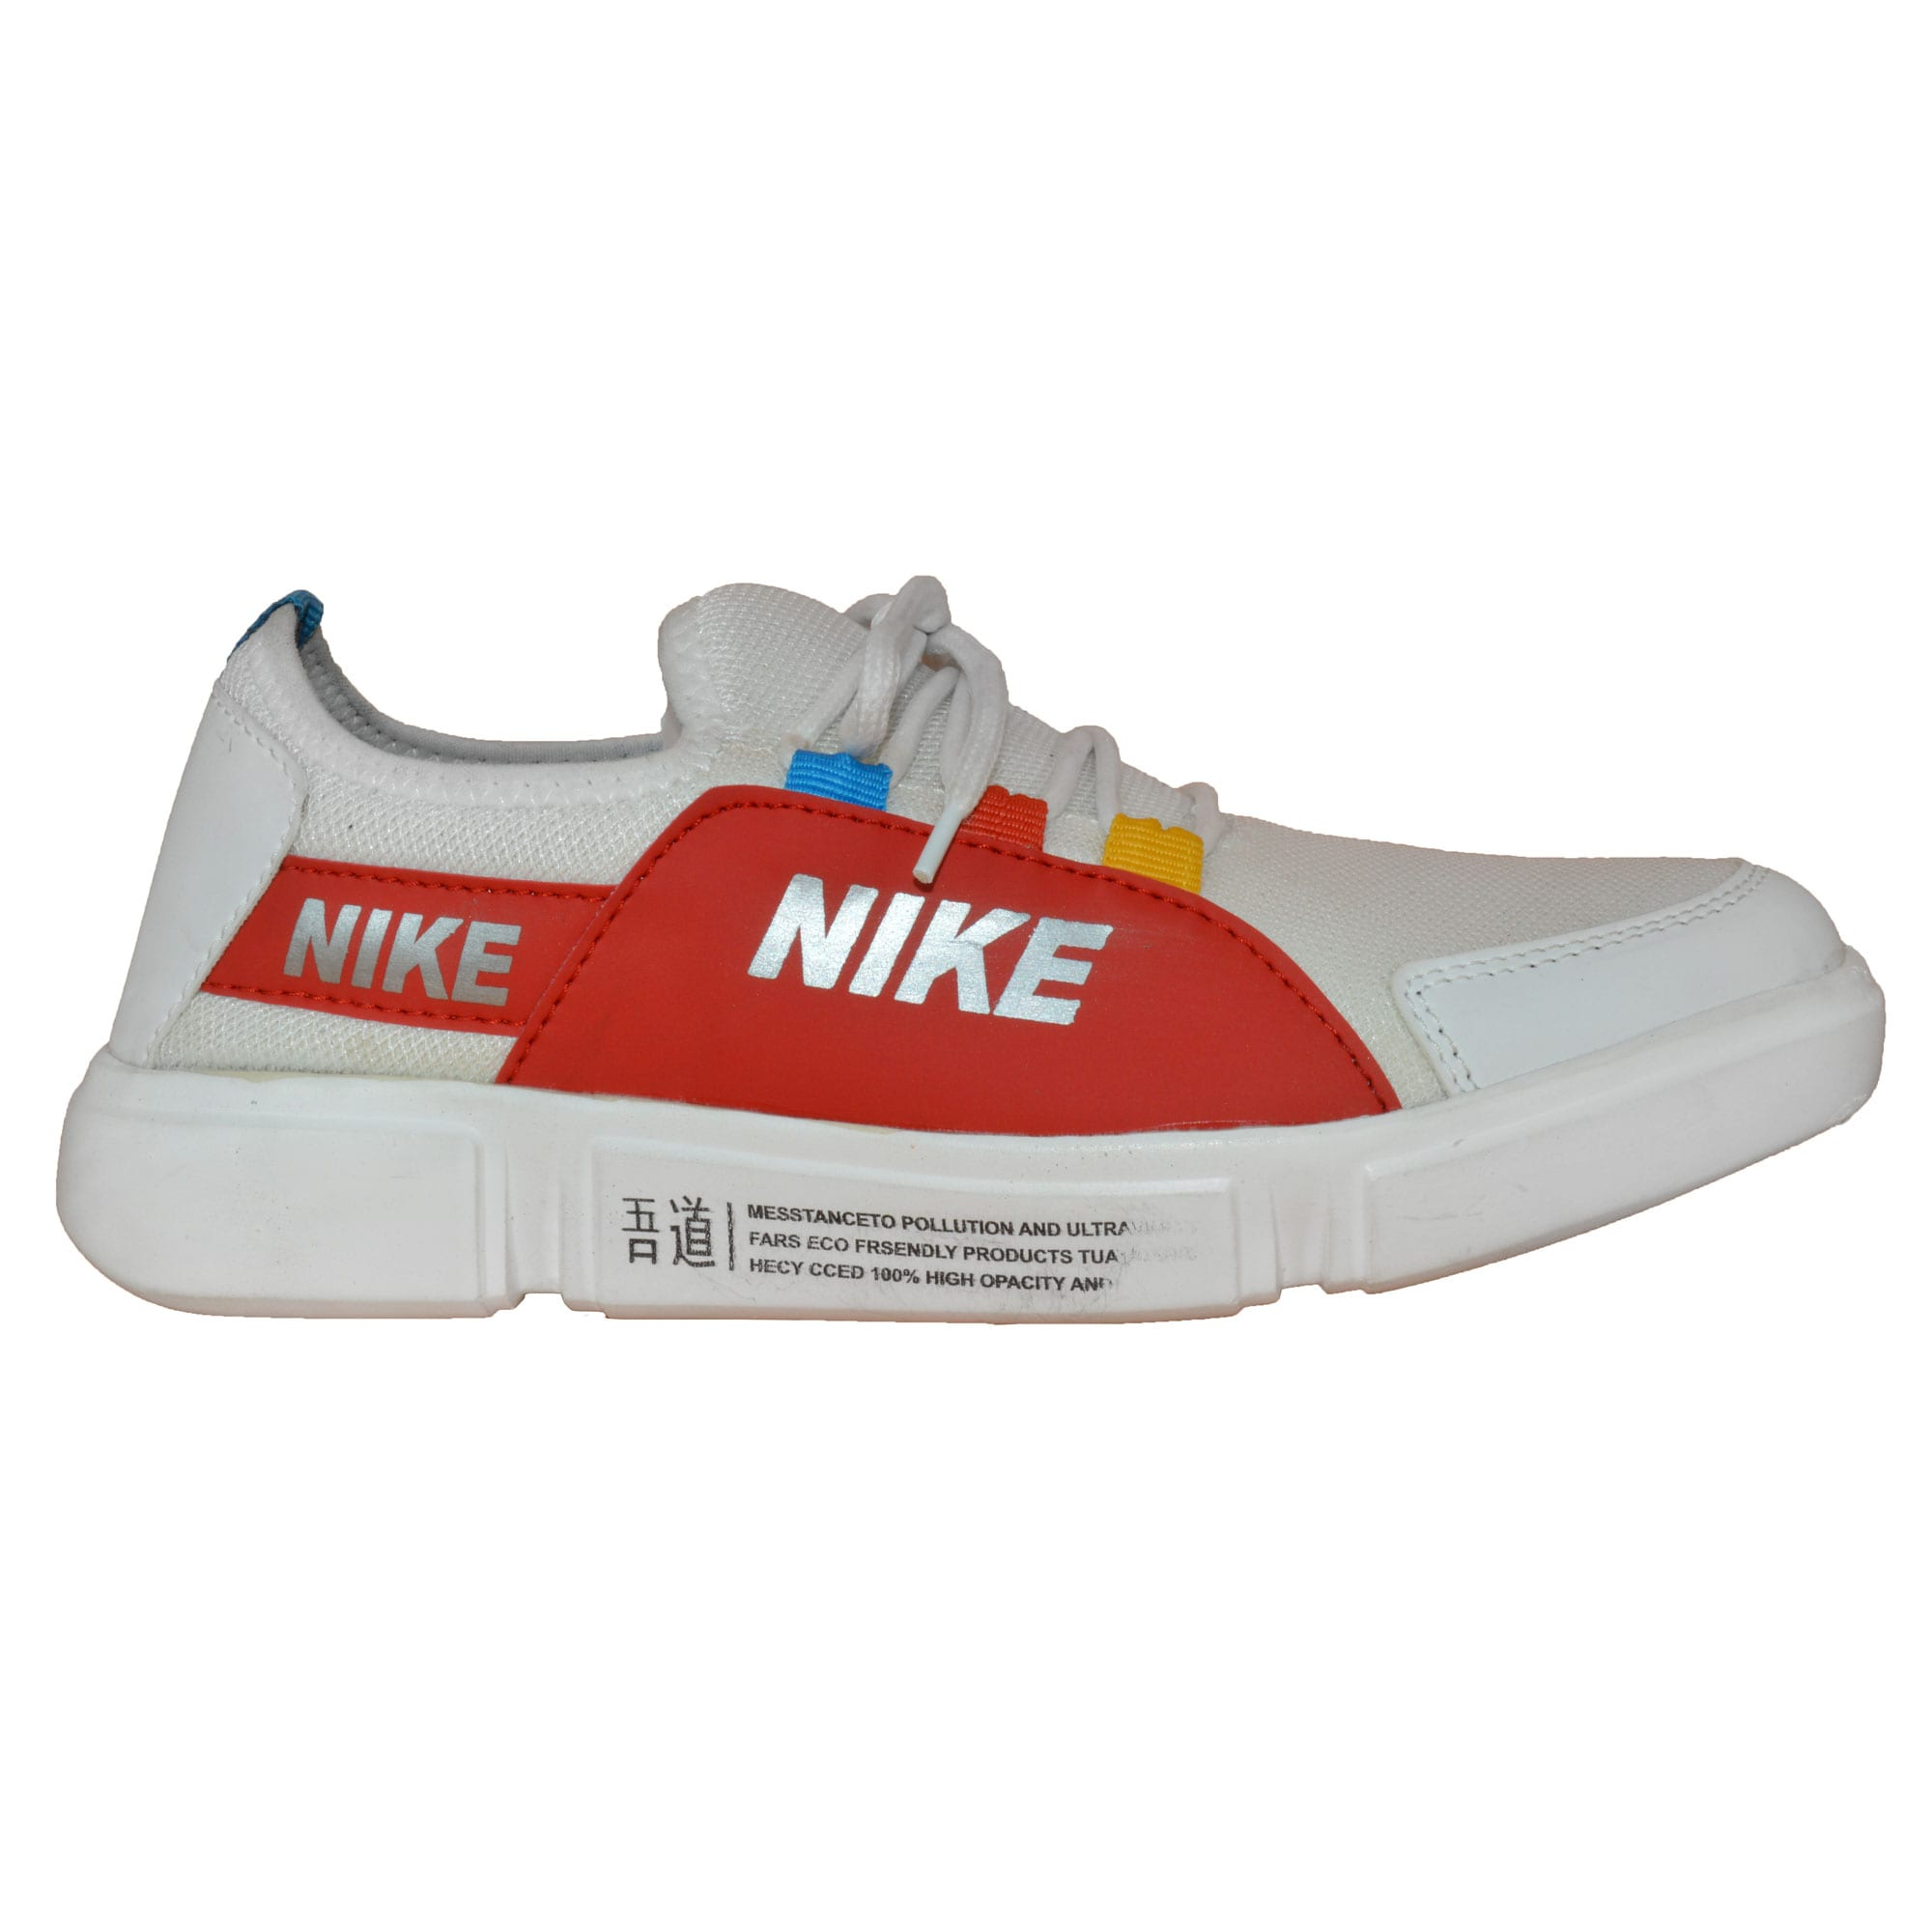 IMCOLUS117.171_RED STYLESH & NYLON NET STYLESH CANVAS SHOES IMCOLUS117.171_RED (RED,6-10,8 PAIR)